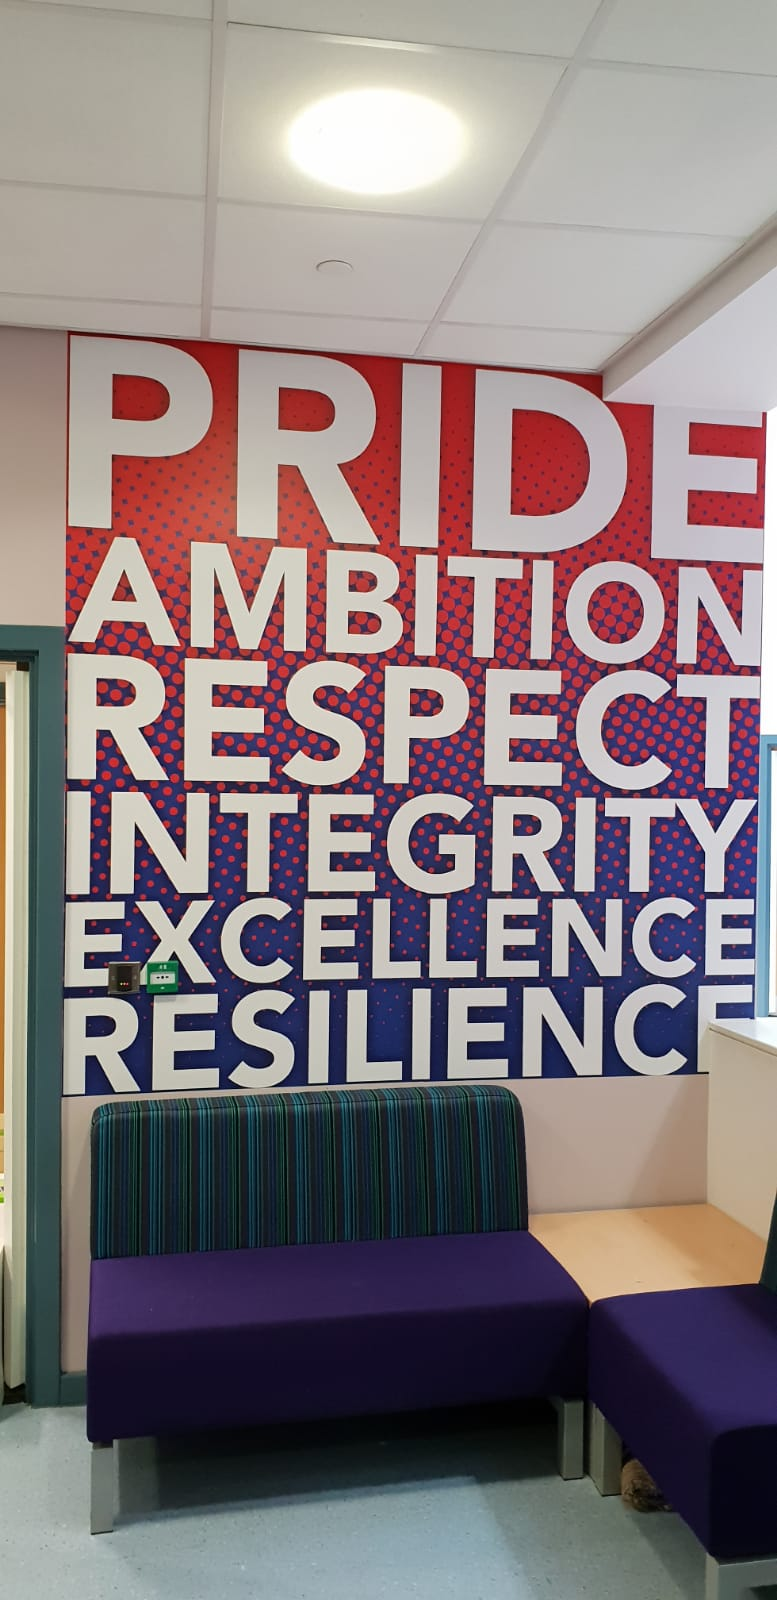 Pride Ambition Respect Integrity Excellence Resilience Wall Graphics